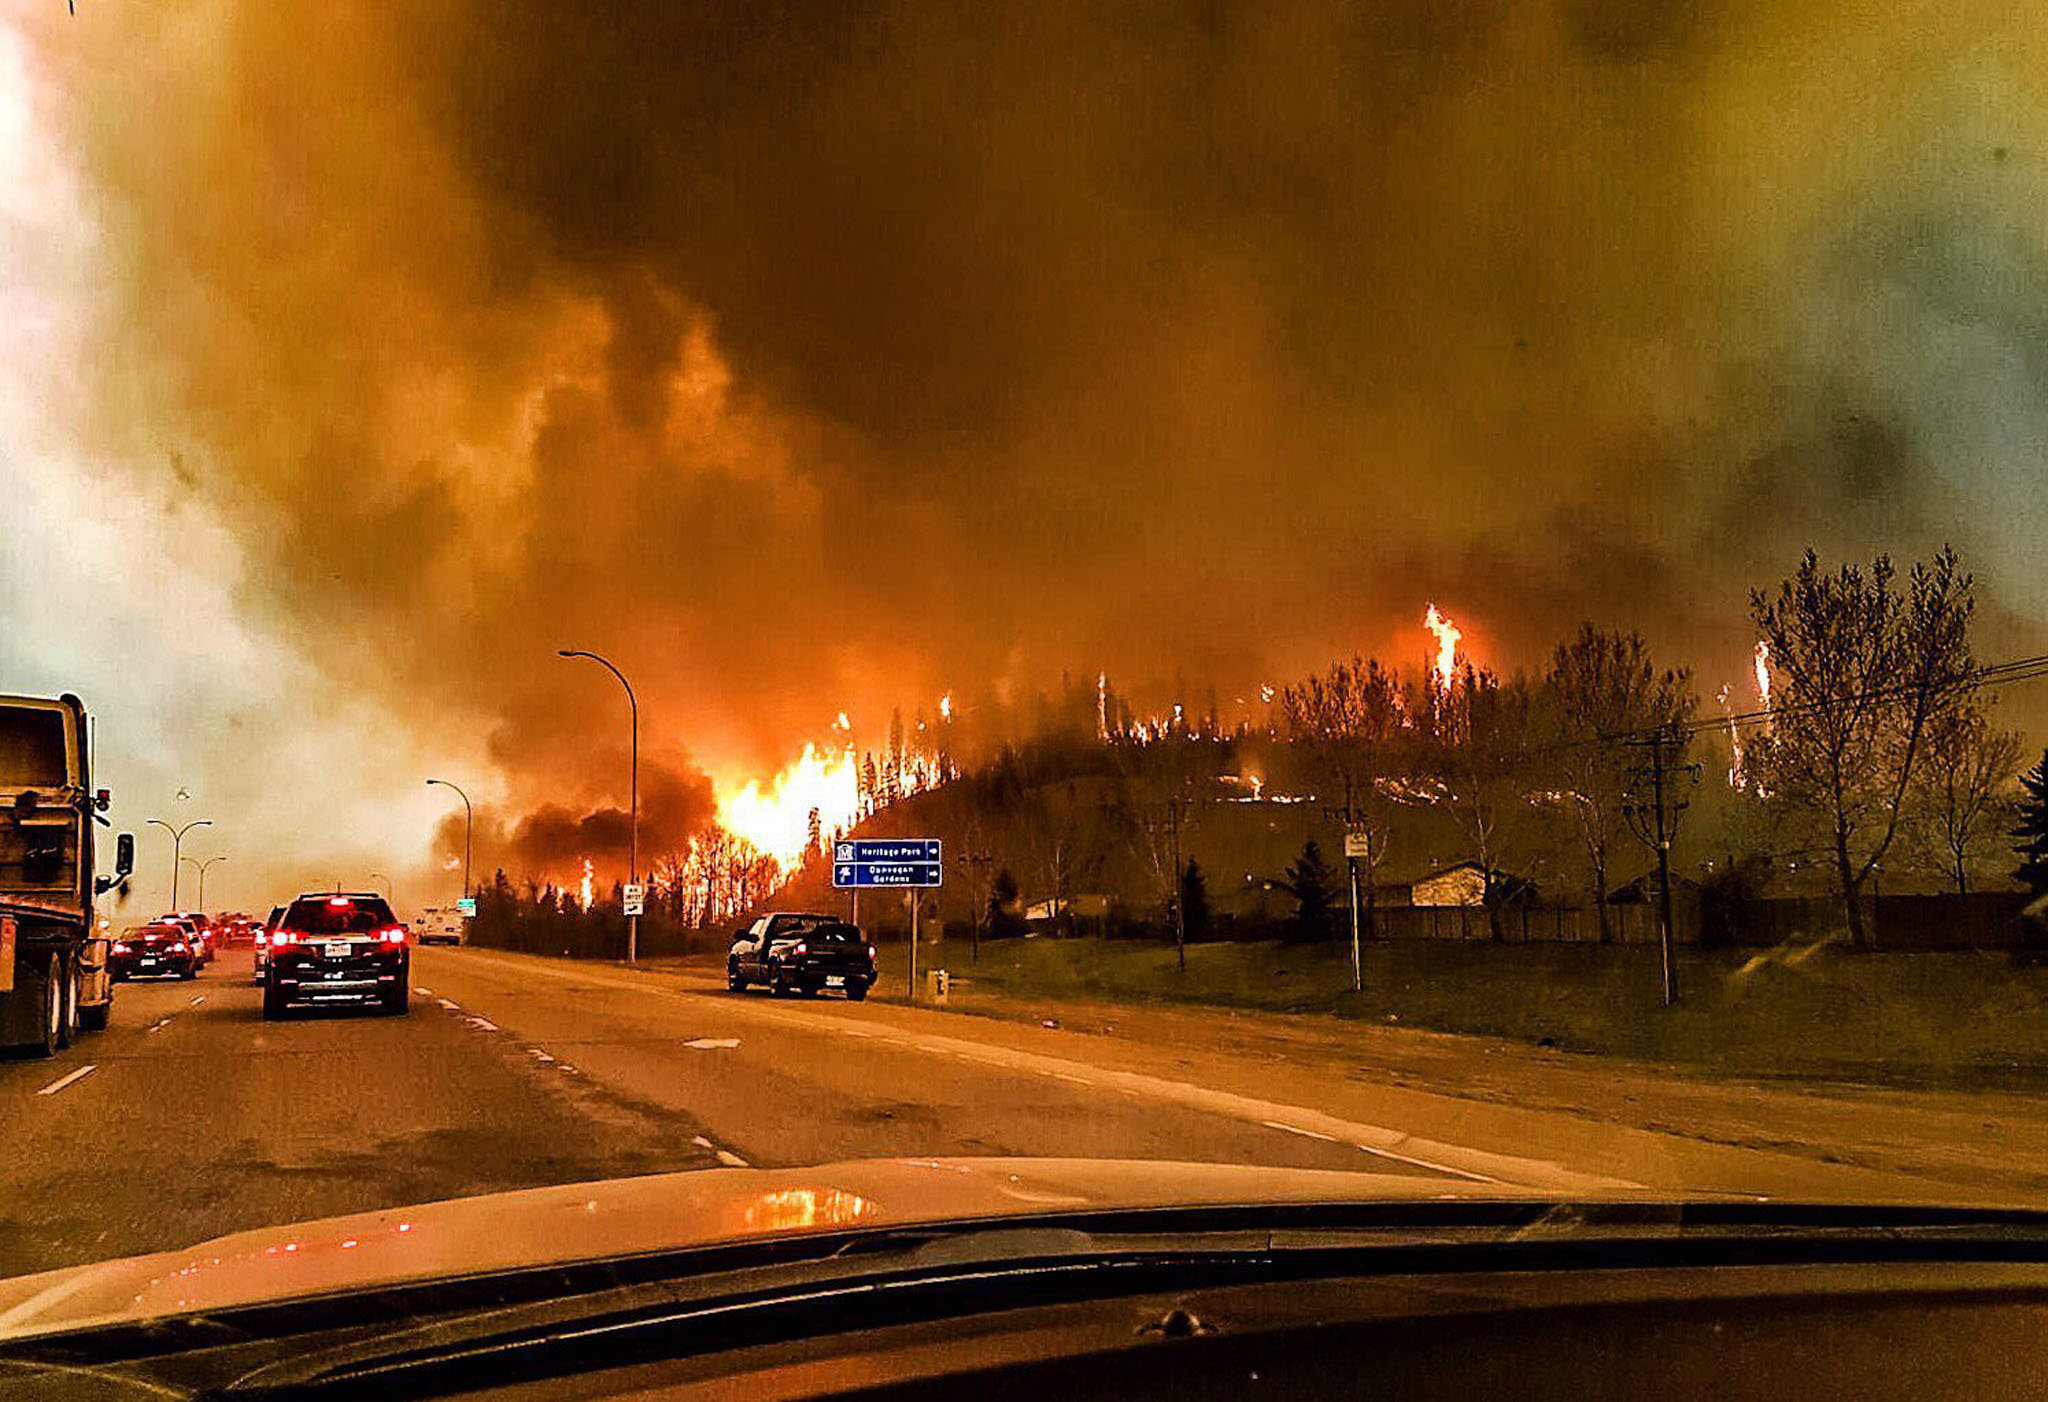 Wildfire in Fort McMurray...epa05290226 A picture provided by Twitter user @jeromegarot on 05 May 2016 shows a wildfire raging through the town of Fort McMurray, Canada, 03 May 2016. Weather conditions were making it more difficult to extinguish a forest fire that has forced the evacuation of some 70,000 people from the northwestern Canadian city of Fort McMurray. Alberta provincial authorities estimated that at least some 1,600 buildings in the city have been consumed by the flames, which have not caused any deaths or injuries so far.  EPA/TWITTER.COM/JEROMEGAROT ATTENTION EDITORS : EPA IS USING AN IMAGE FROM AN ALTERNATIVE SOURCE AND CANNOT PROVIDE CONFIRMATION OF CONTENT, AUTHENTICITY, PLACE, DATE AND SOURCE.  EDITORIAL USE ONLY/NO SALES